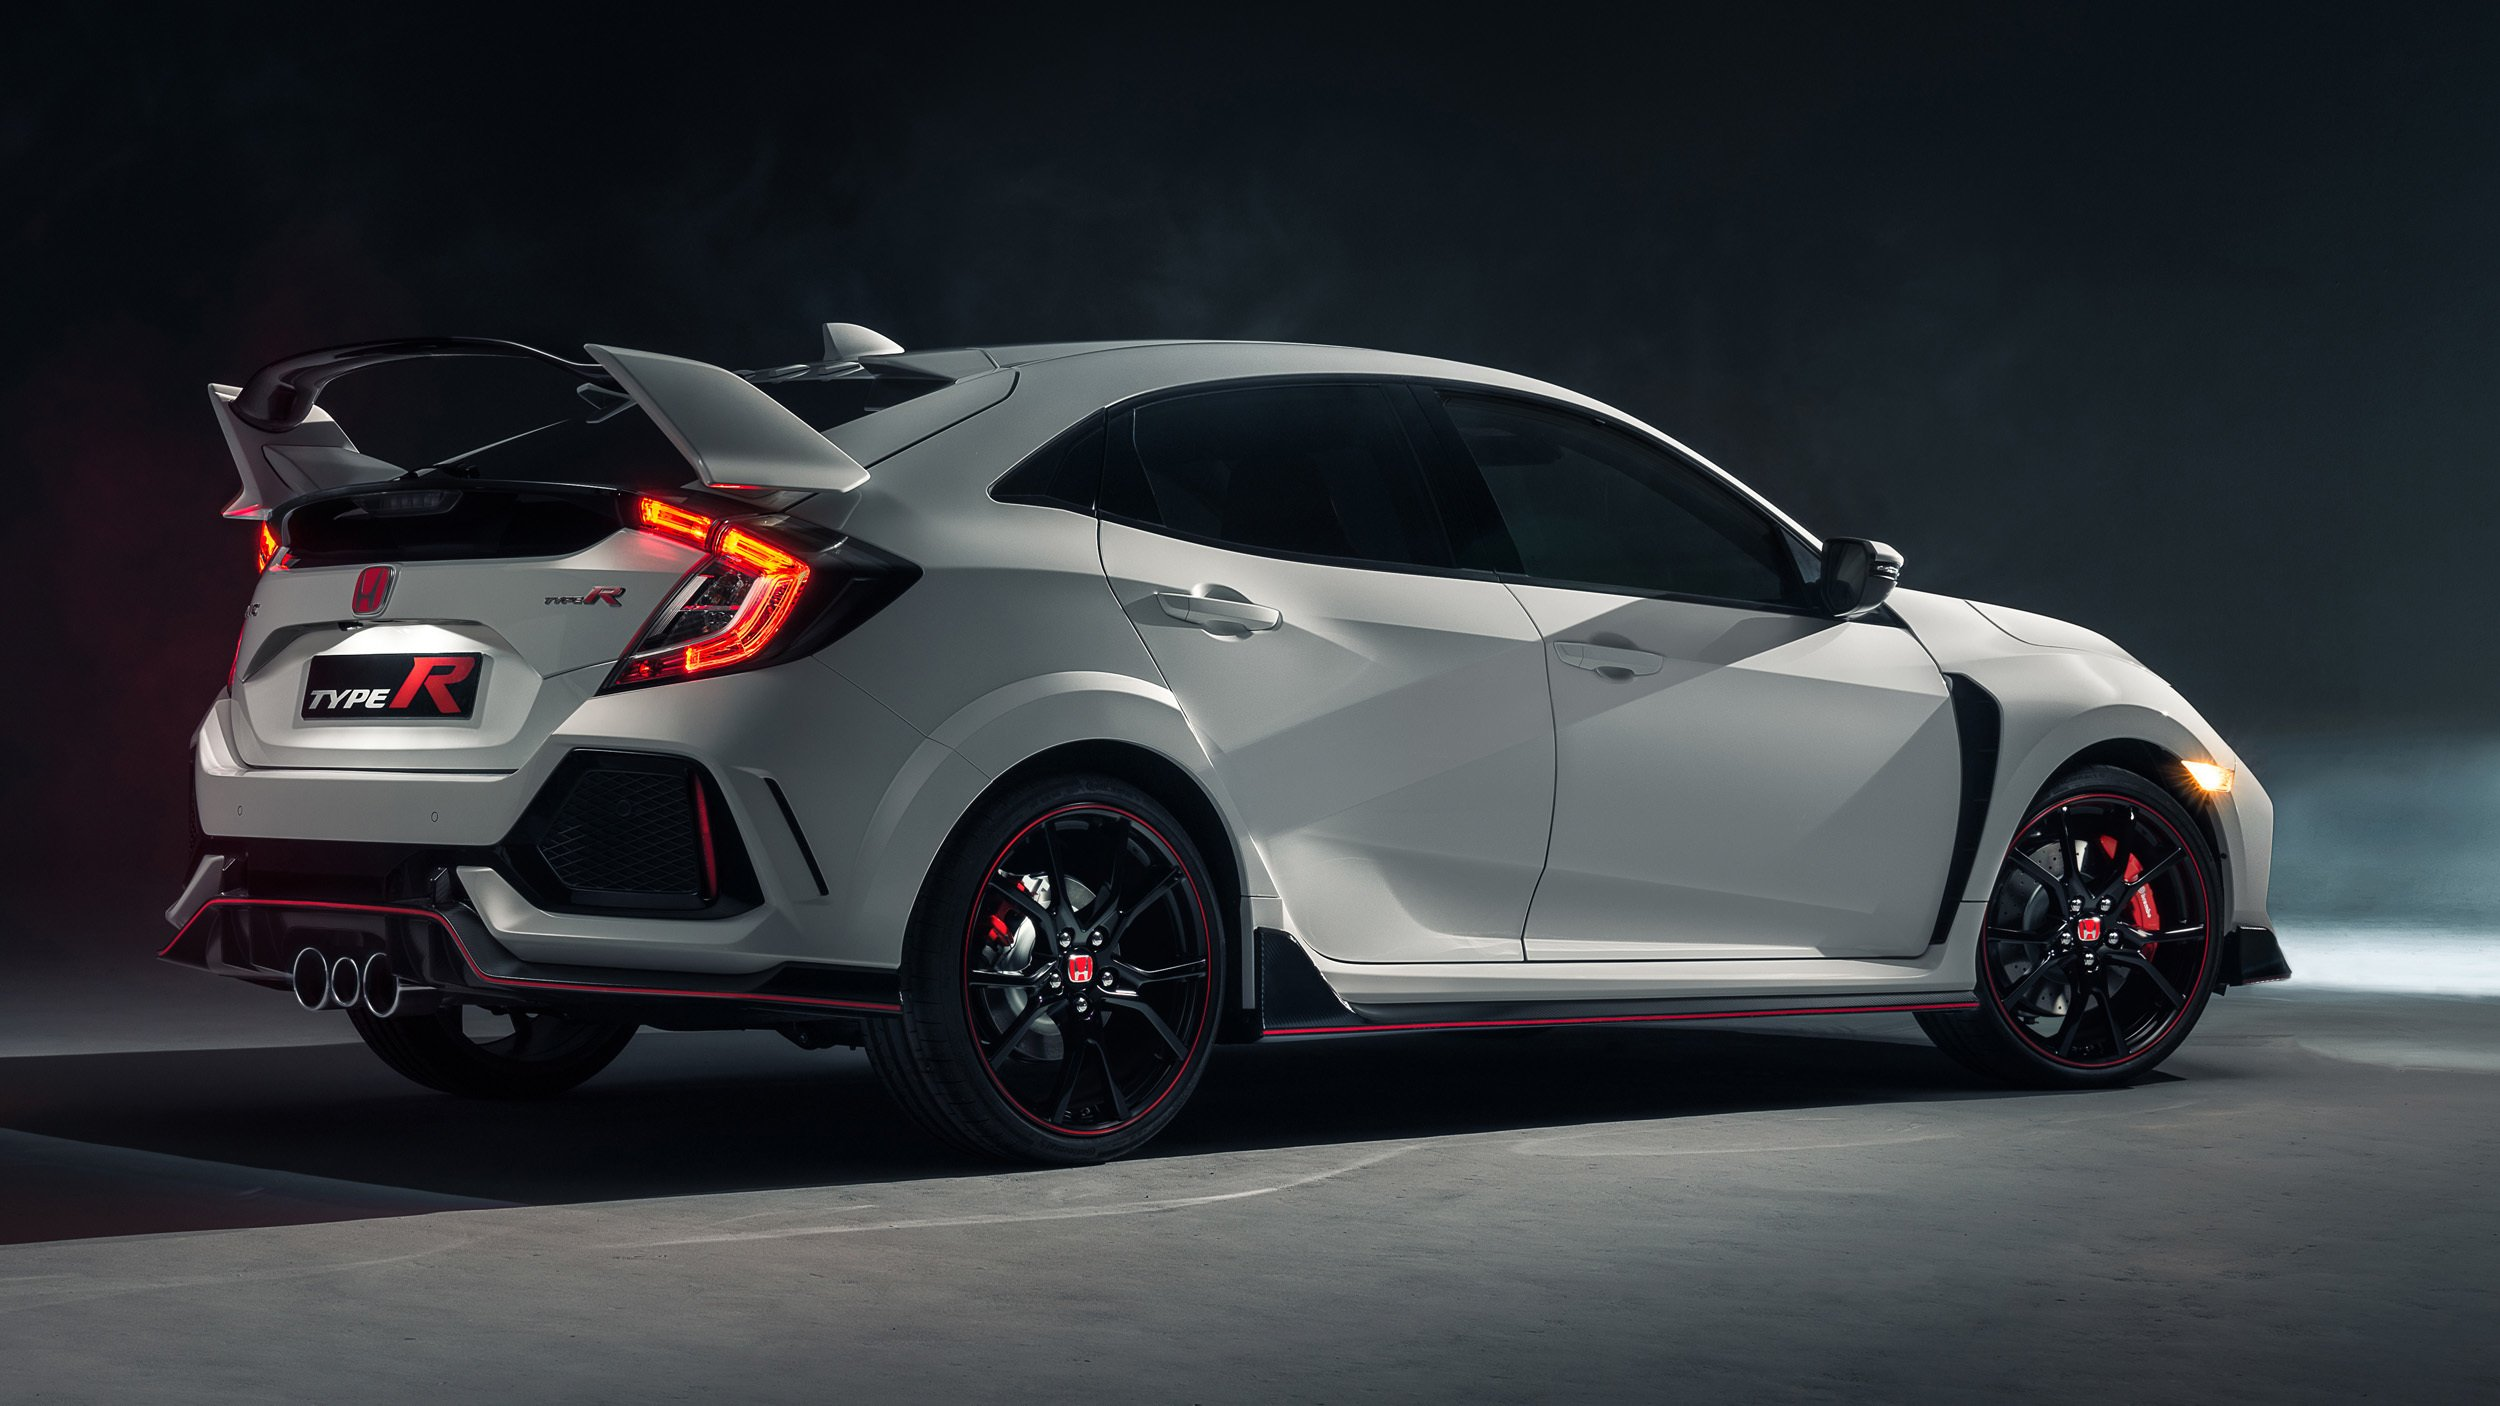 2017 honda civic type r revealed in geneva here later this year photos caradvice. Black Bedroom Furniture Sets. Home Design Ideas